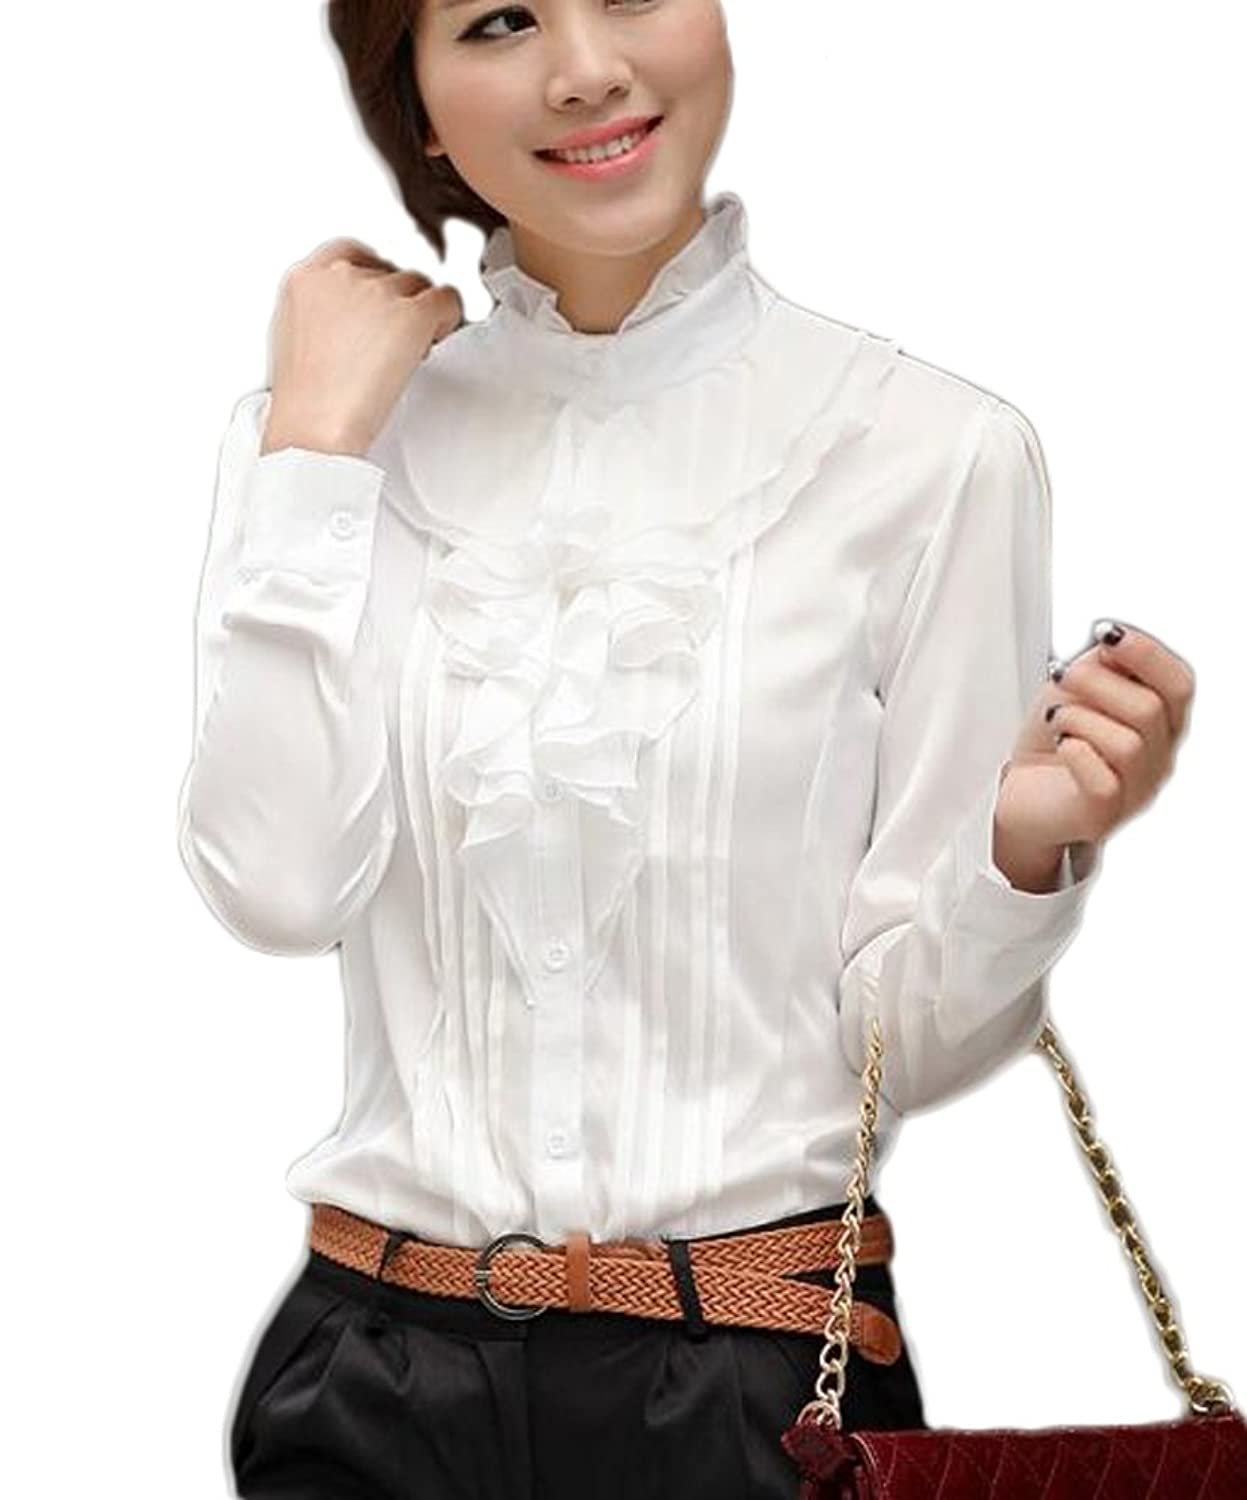 1900-1910s Clothing Small Long Sleeve Lotus Ruffled Casual Shirt Blouse $18.67 AT vintagedancer.com